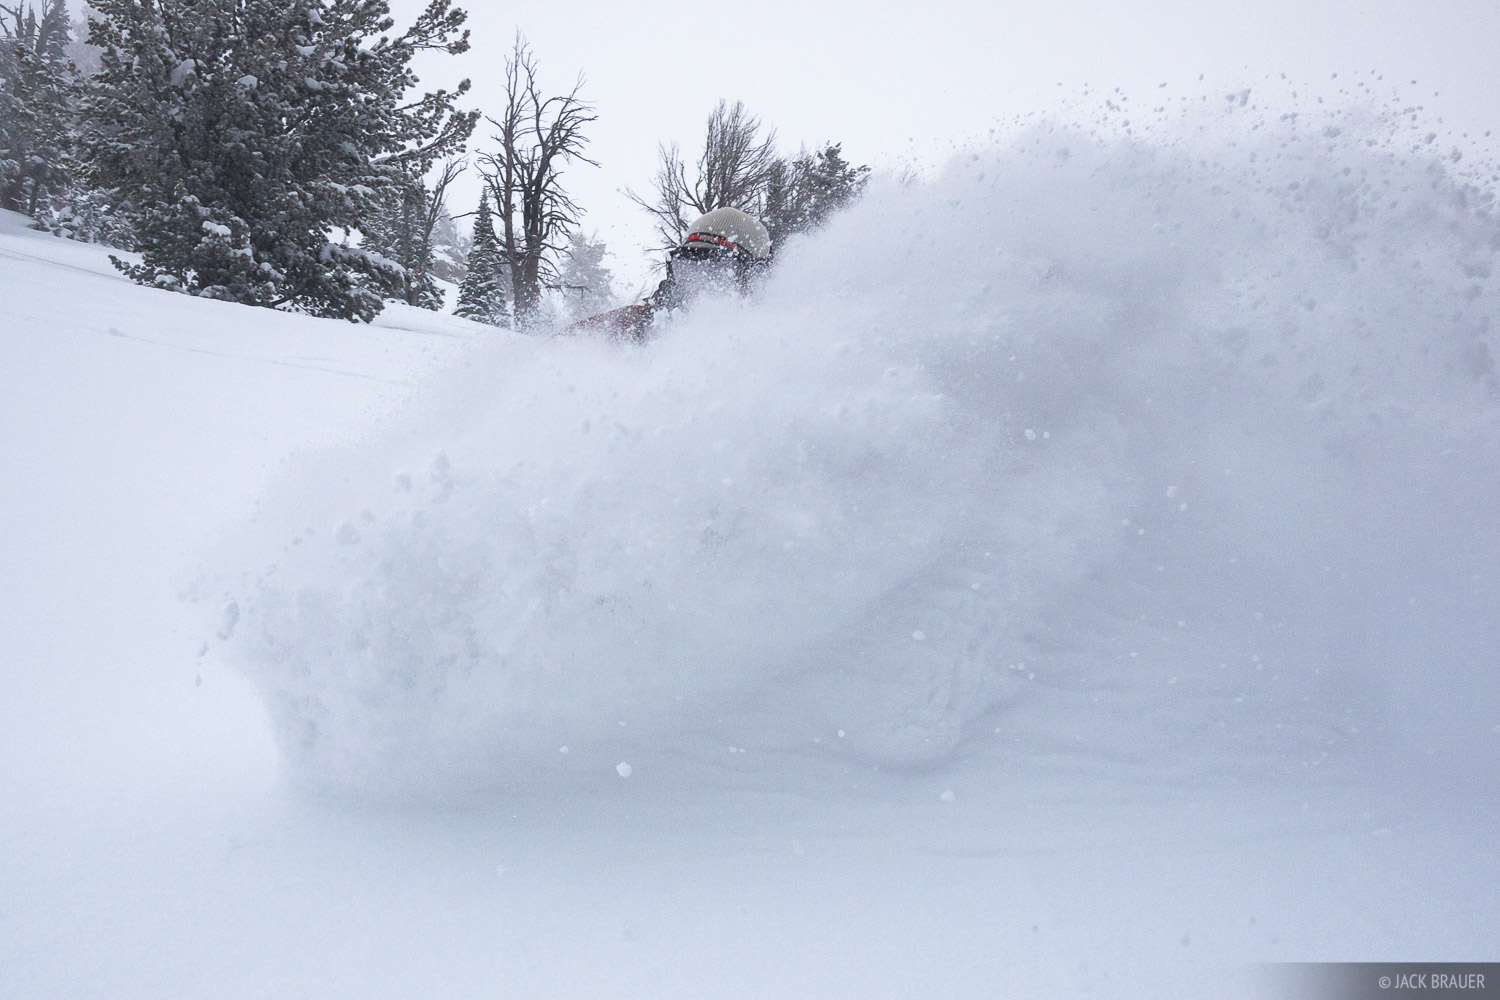 Carving some deep powder - February.  Snowboarder: Mike Bryson.